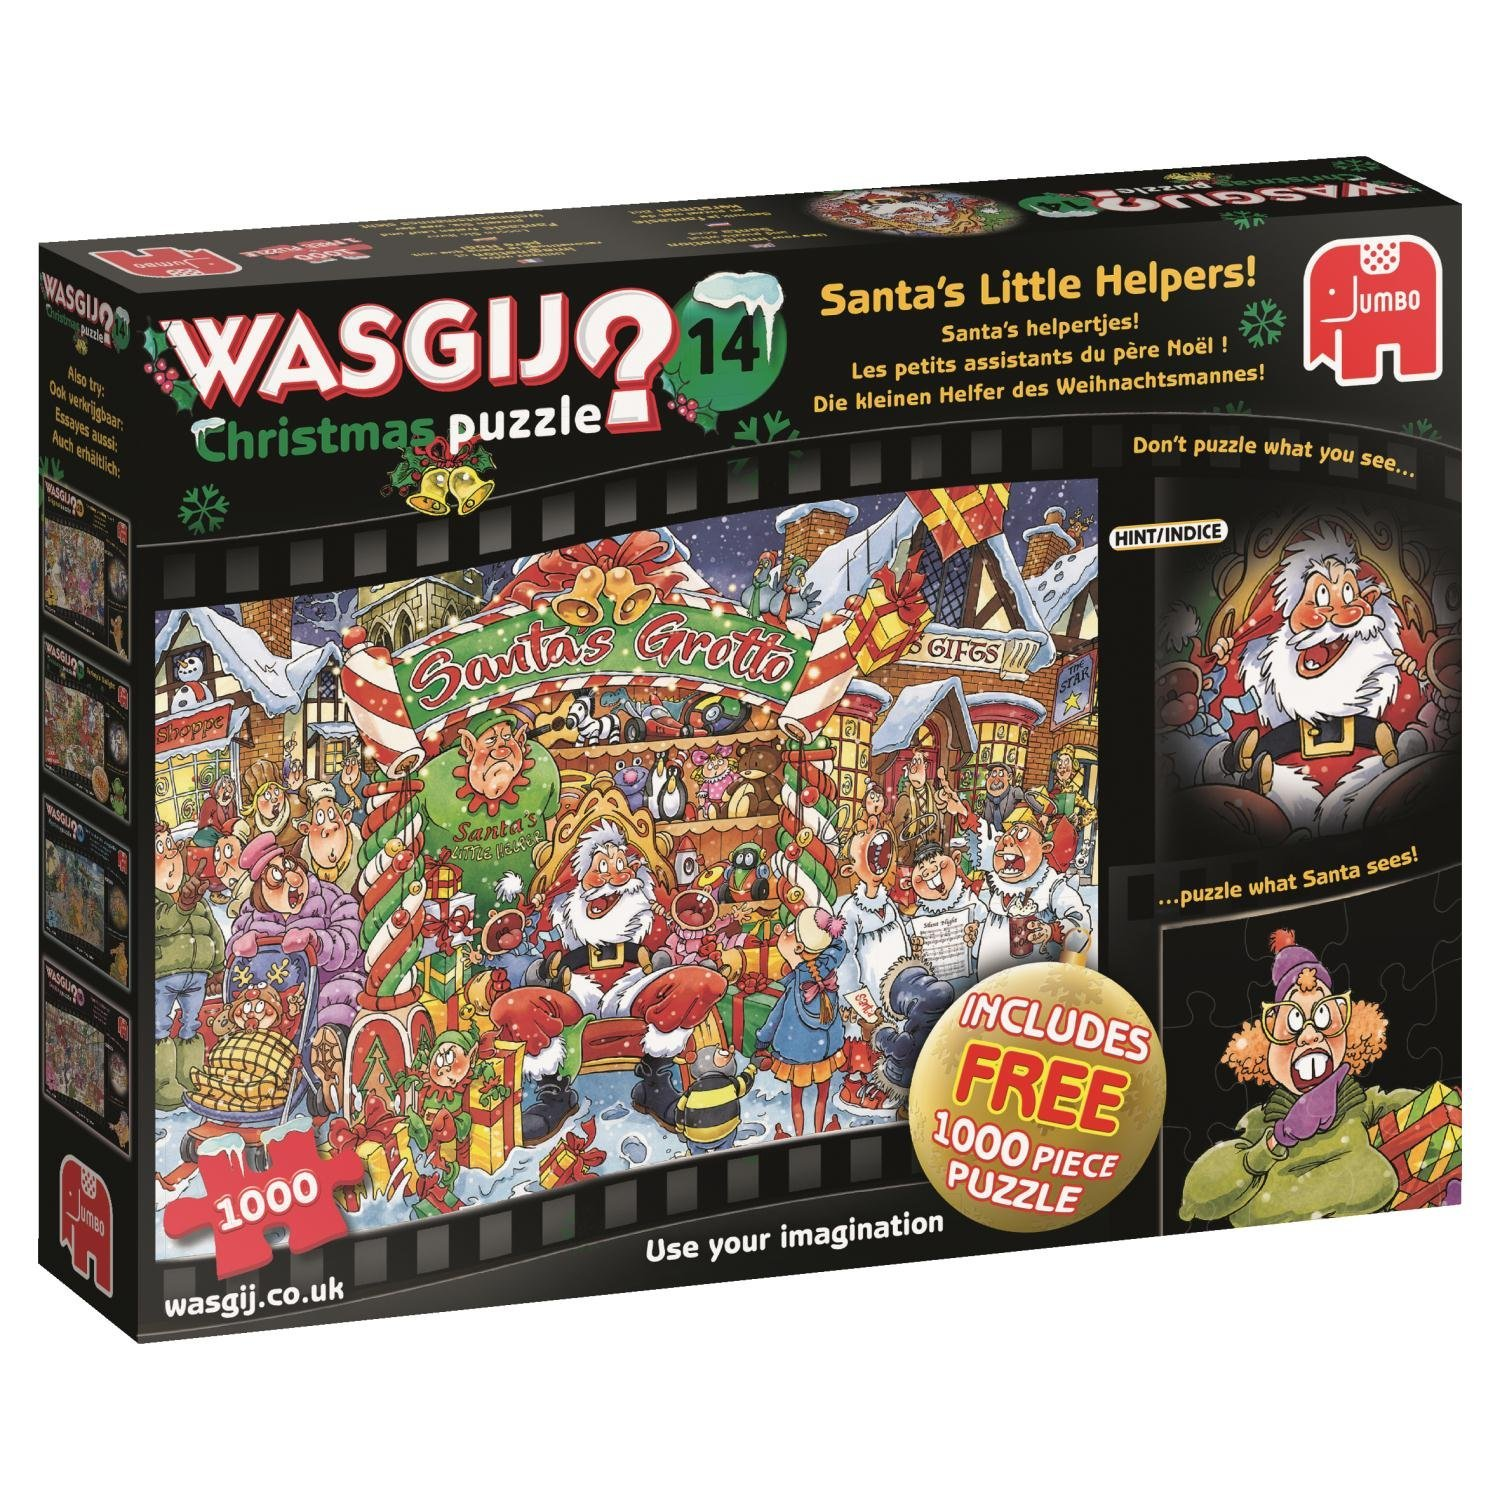 Wasgij Christmas 14, Santa's Little Helpers Jigsaw Puzzle, (2 x 1000-Piece)